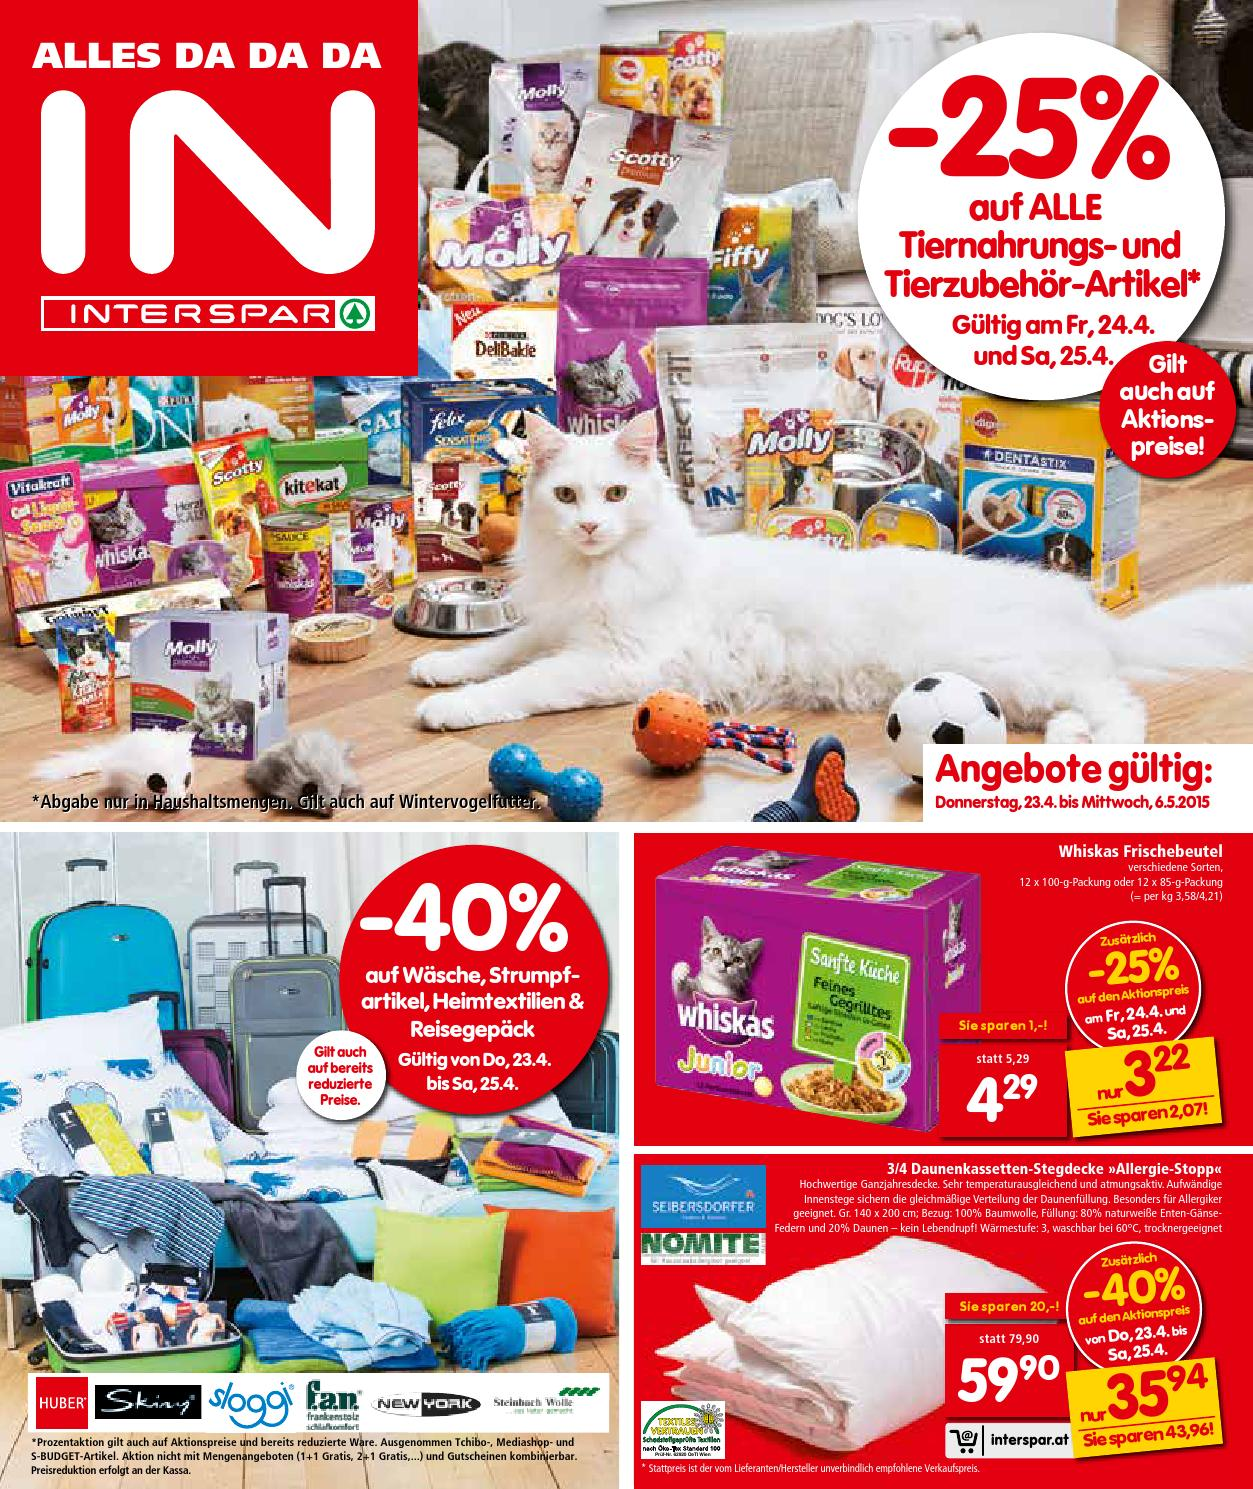 Sonnenliege Interspar Interspar Angebote 23april 6mai2015 By Promoangebote At Issuu